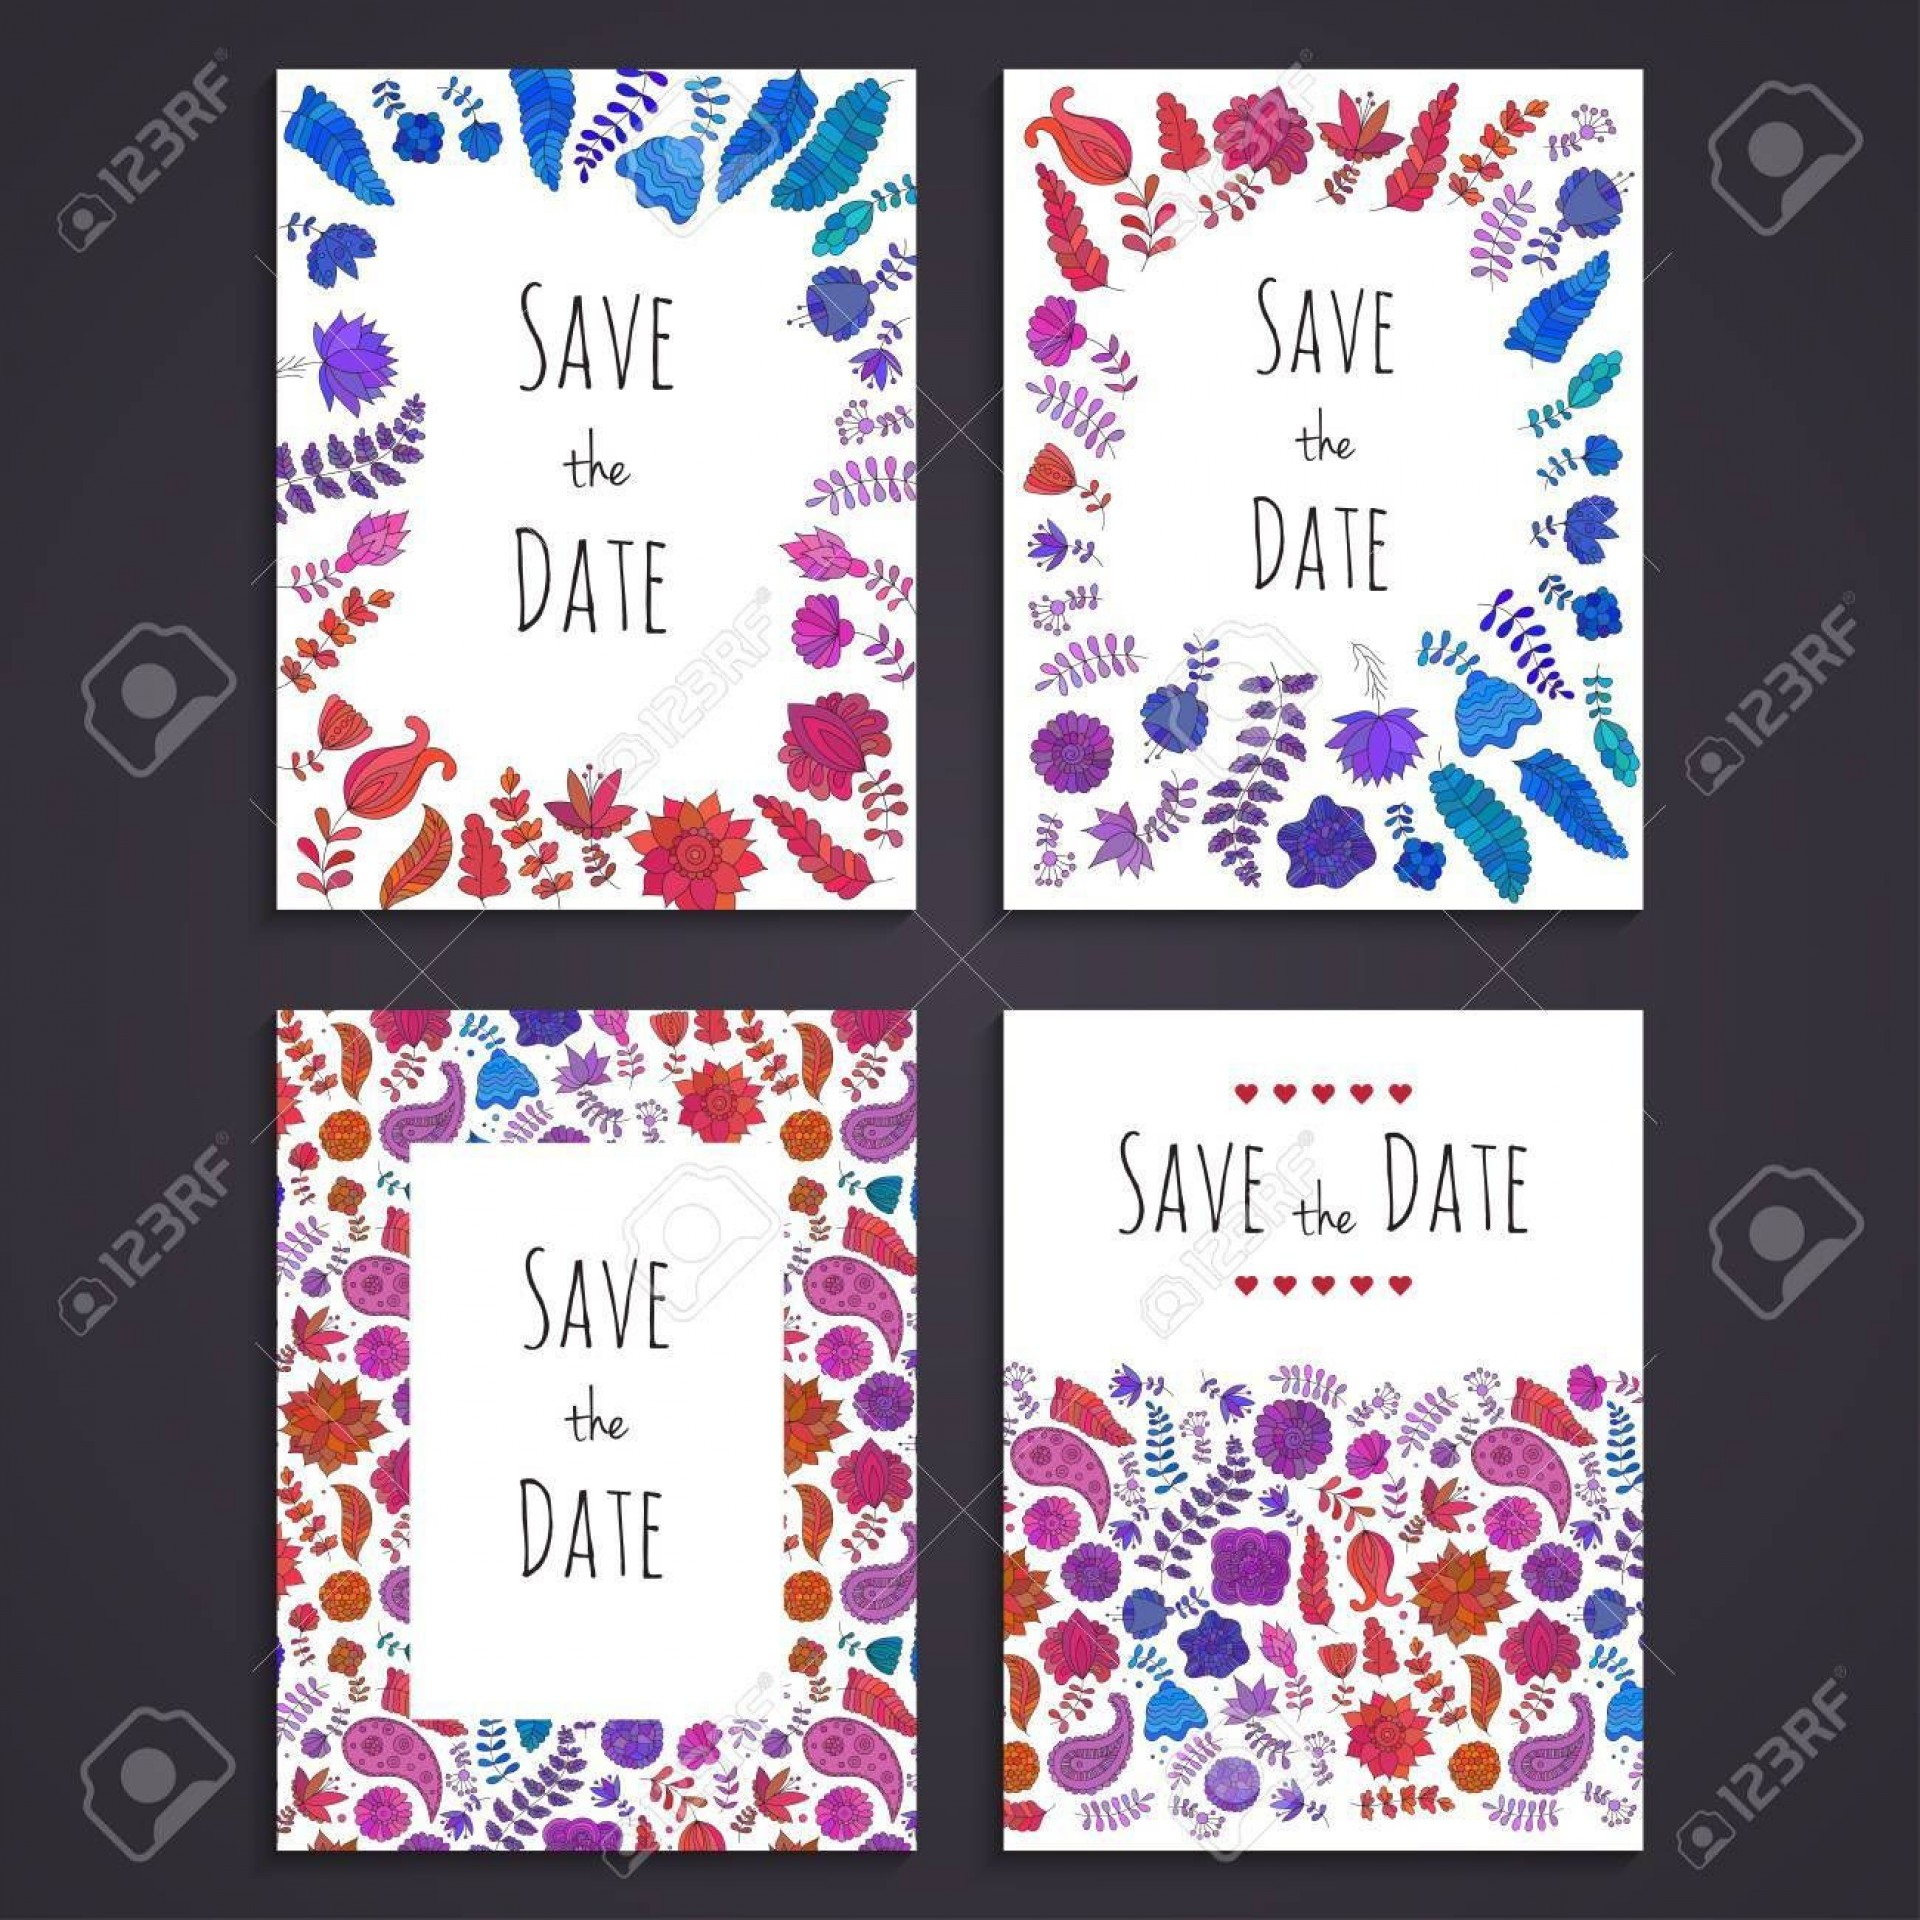 003 Staggering Free Save The Date Birthday Postcard Template High Def  Templates1920